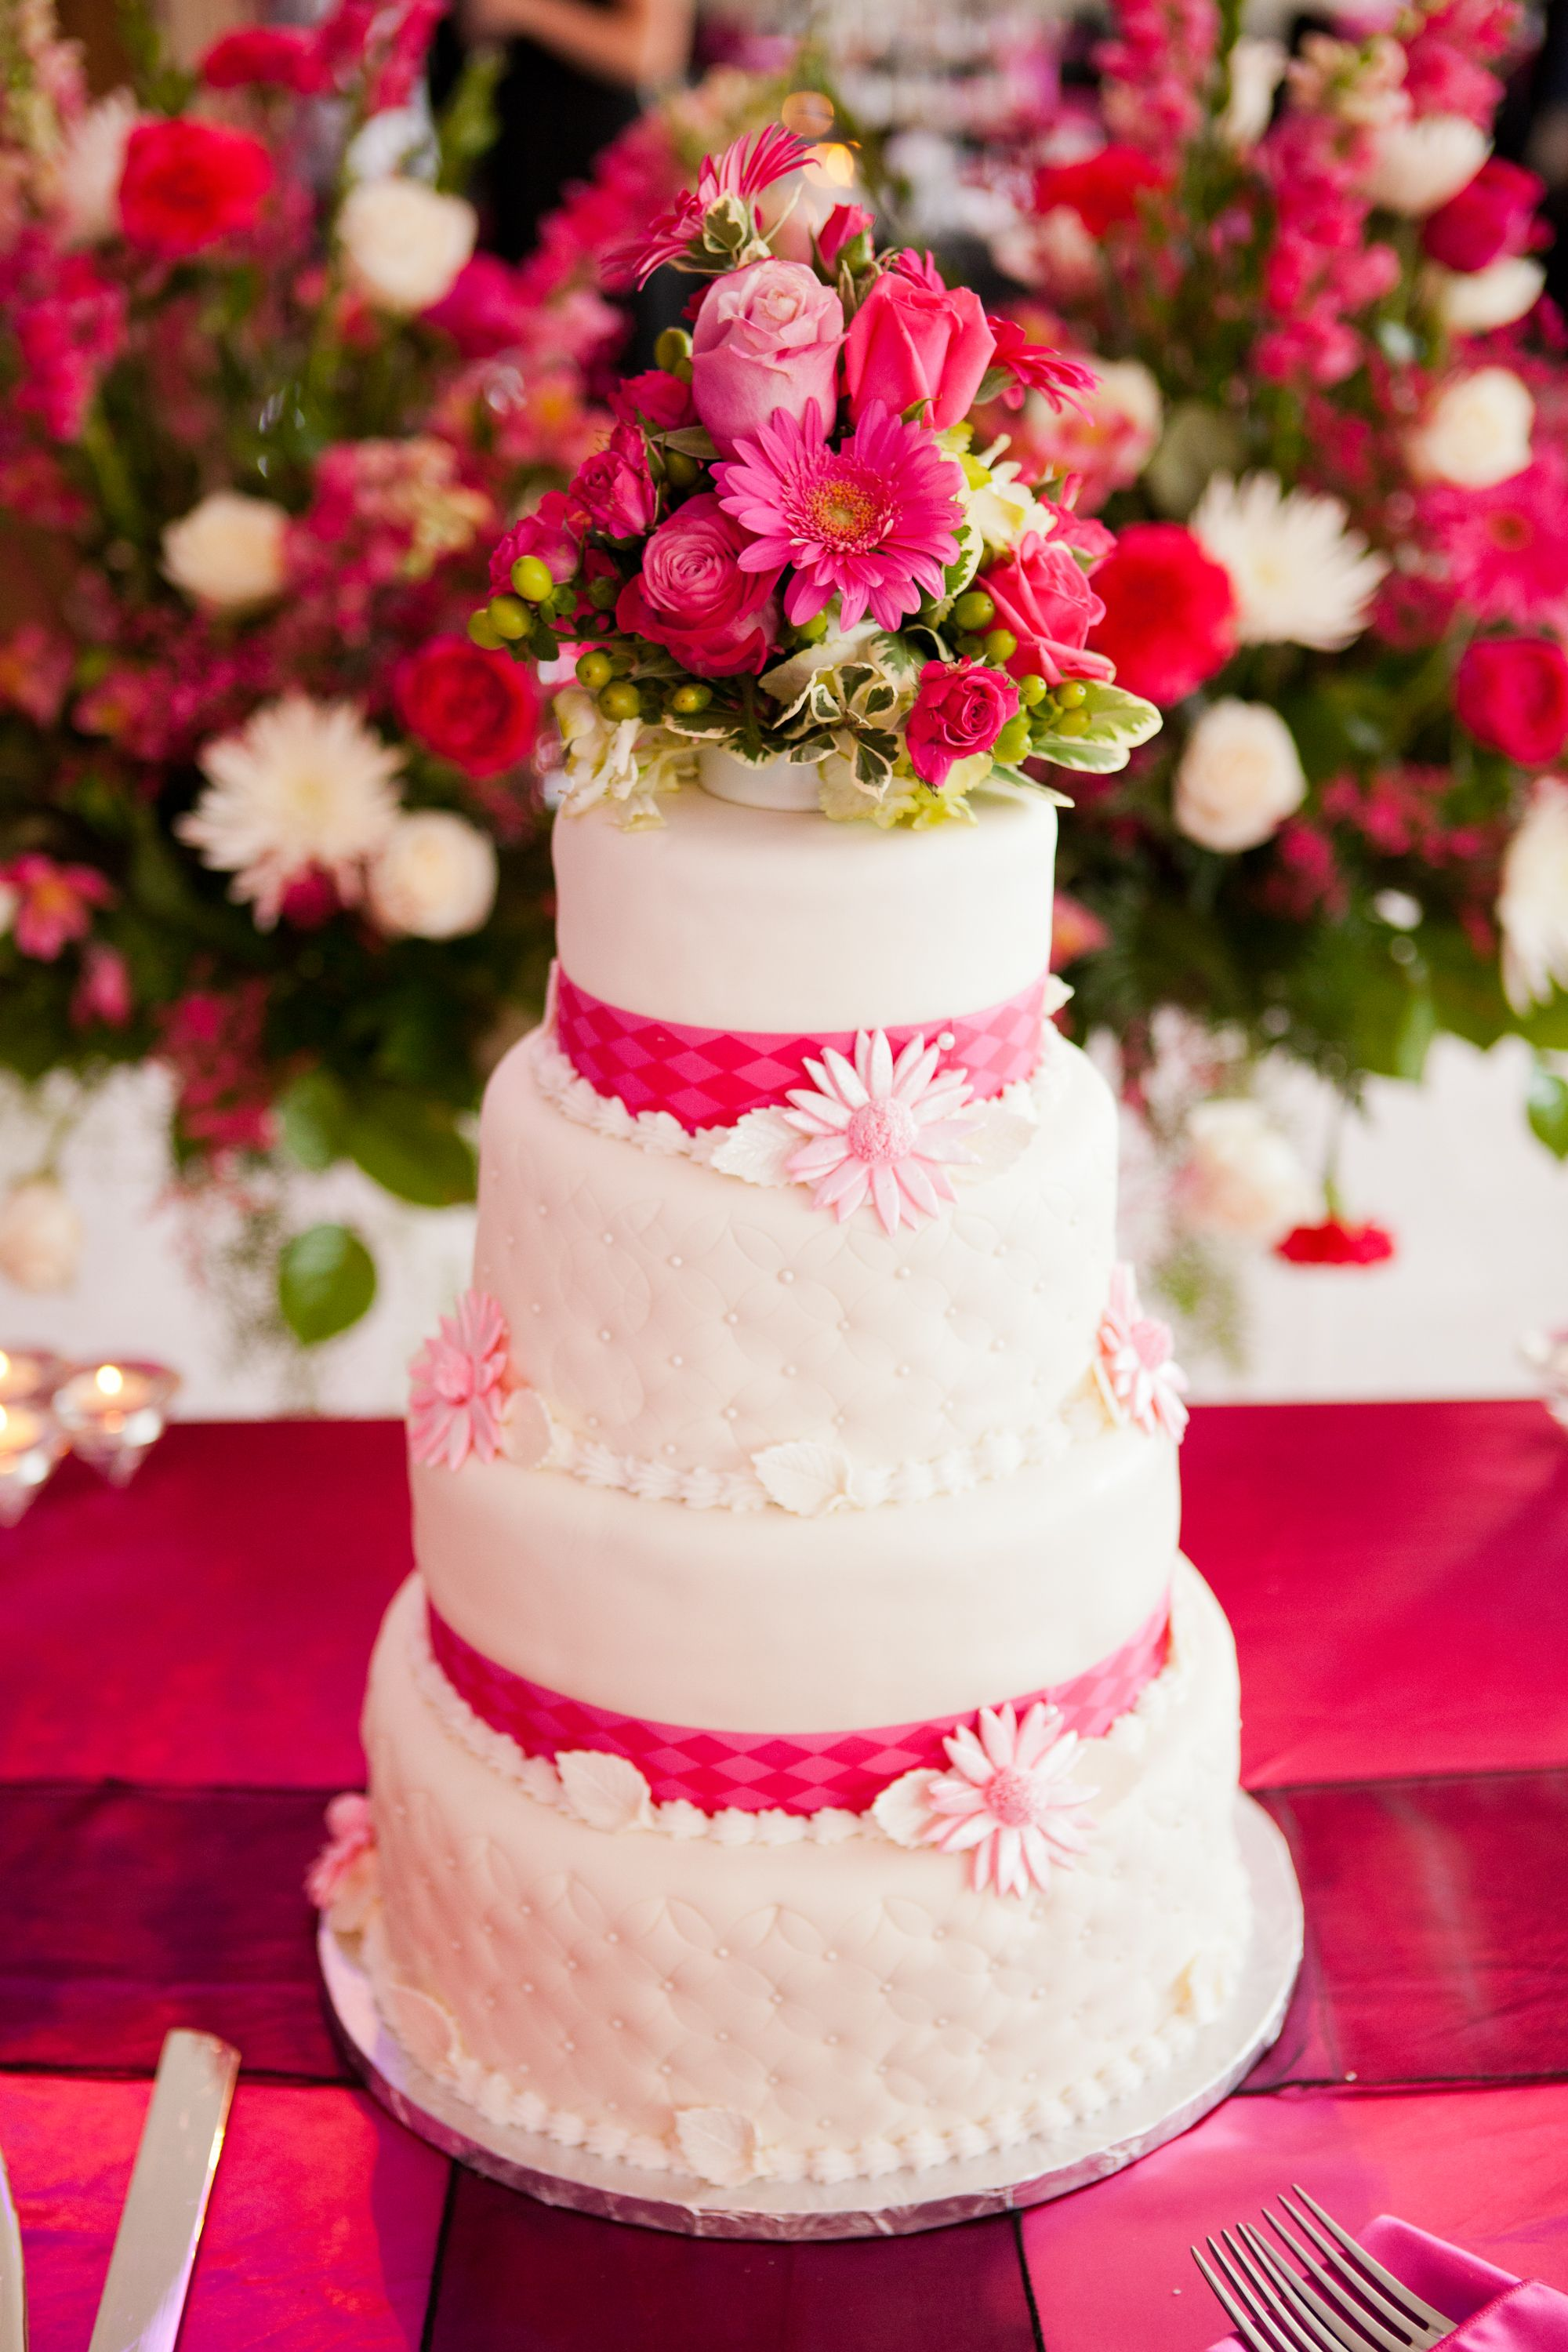 White Wedding Cake With Pink Flowers And Ribbon Classic Colorful